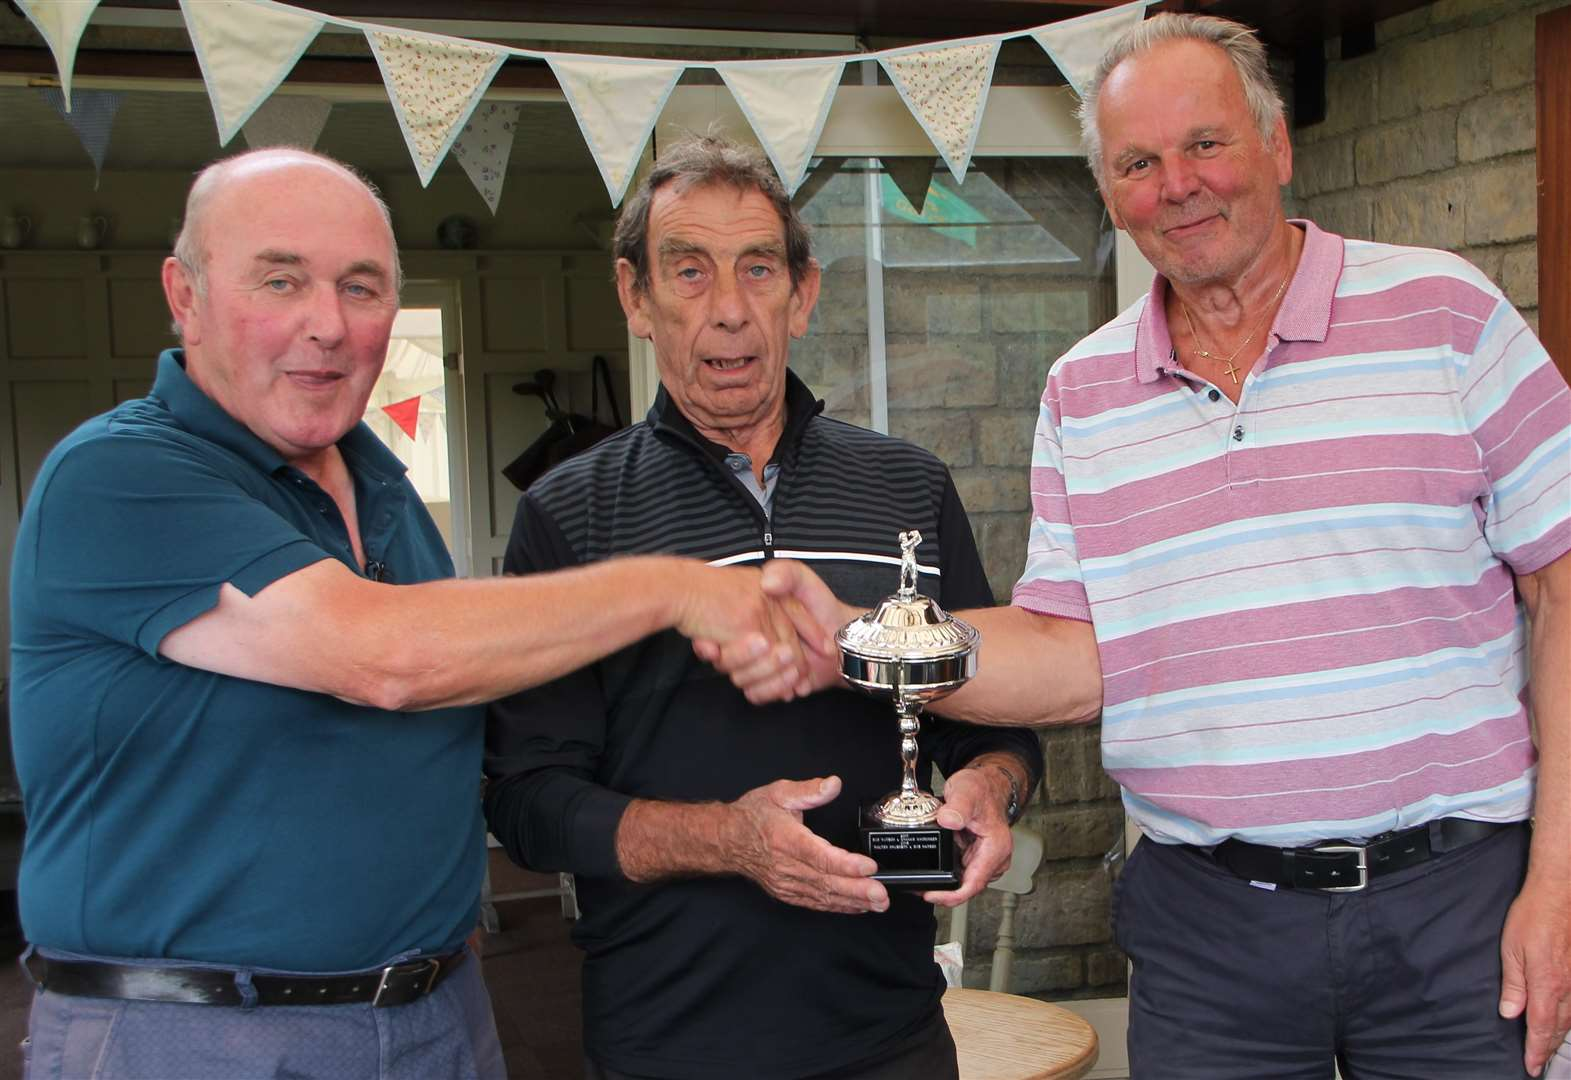 Sudbrook Moor Senior Friendship Cup is won by Bob and Walter